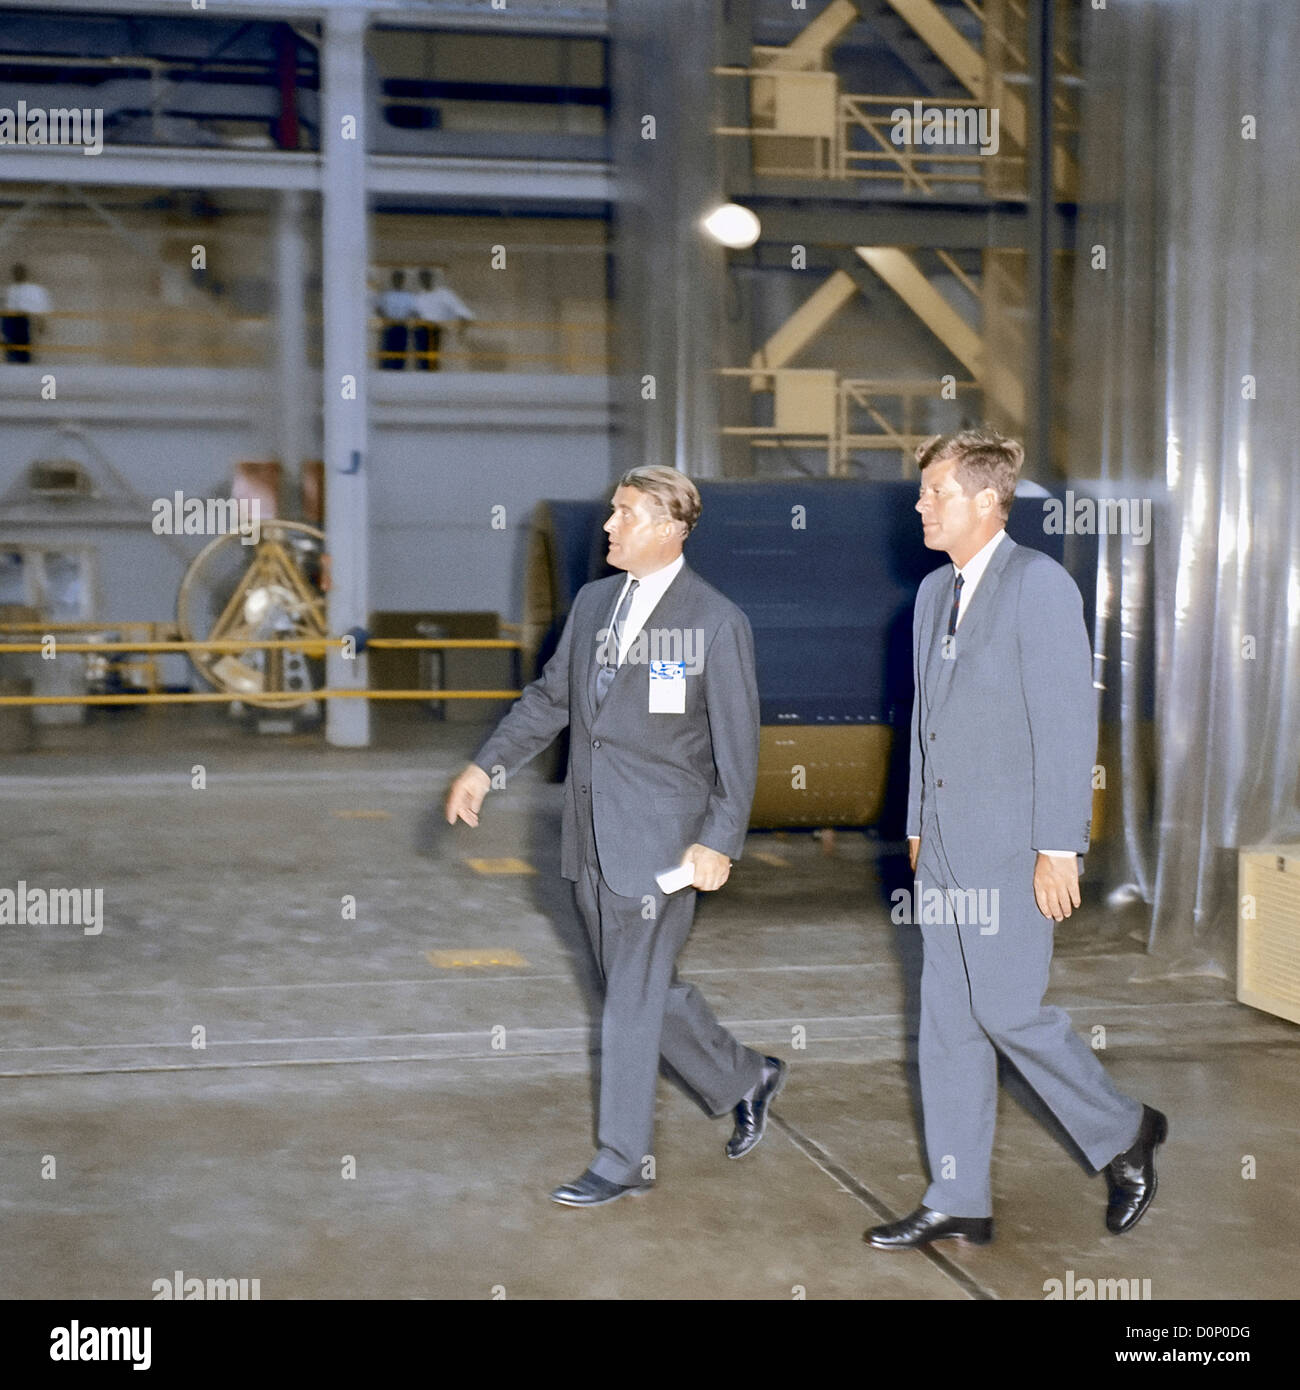 President Kennedy Tours Marshall Space Flight Center with Wernher von Braun - Stock Image